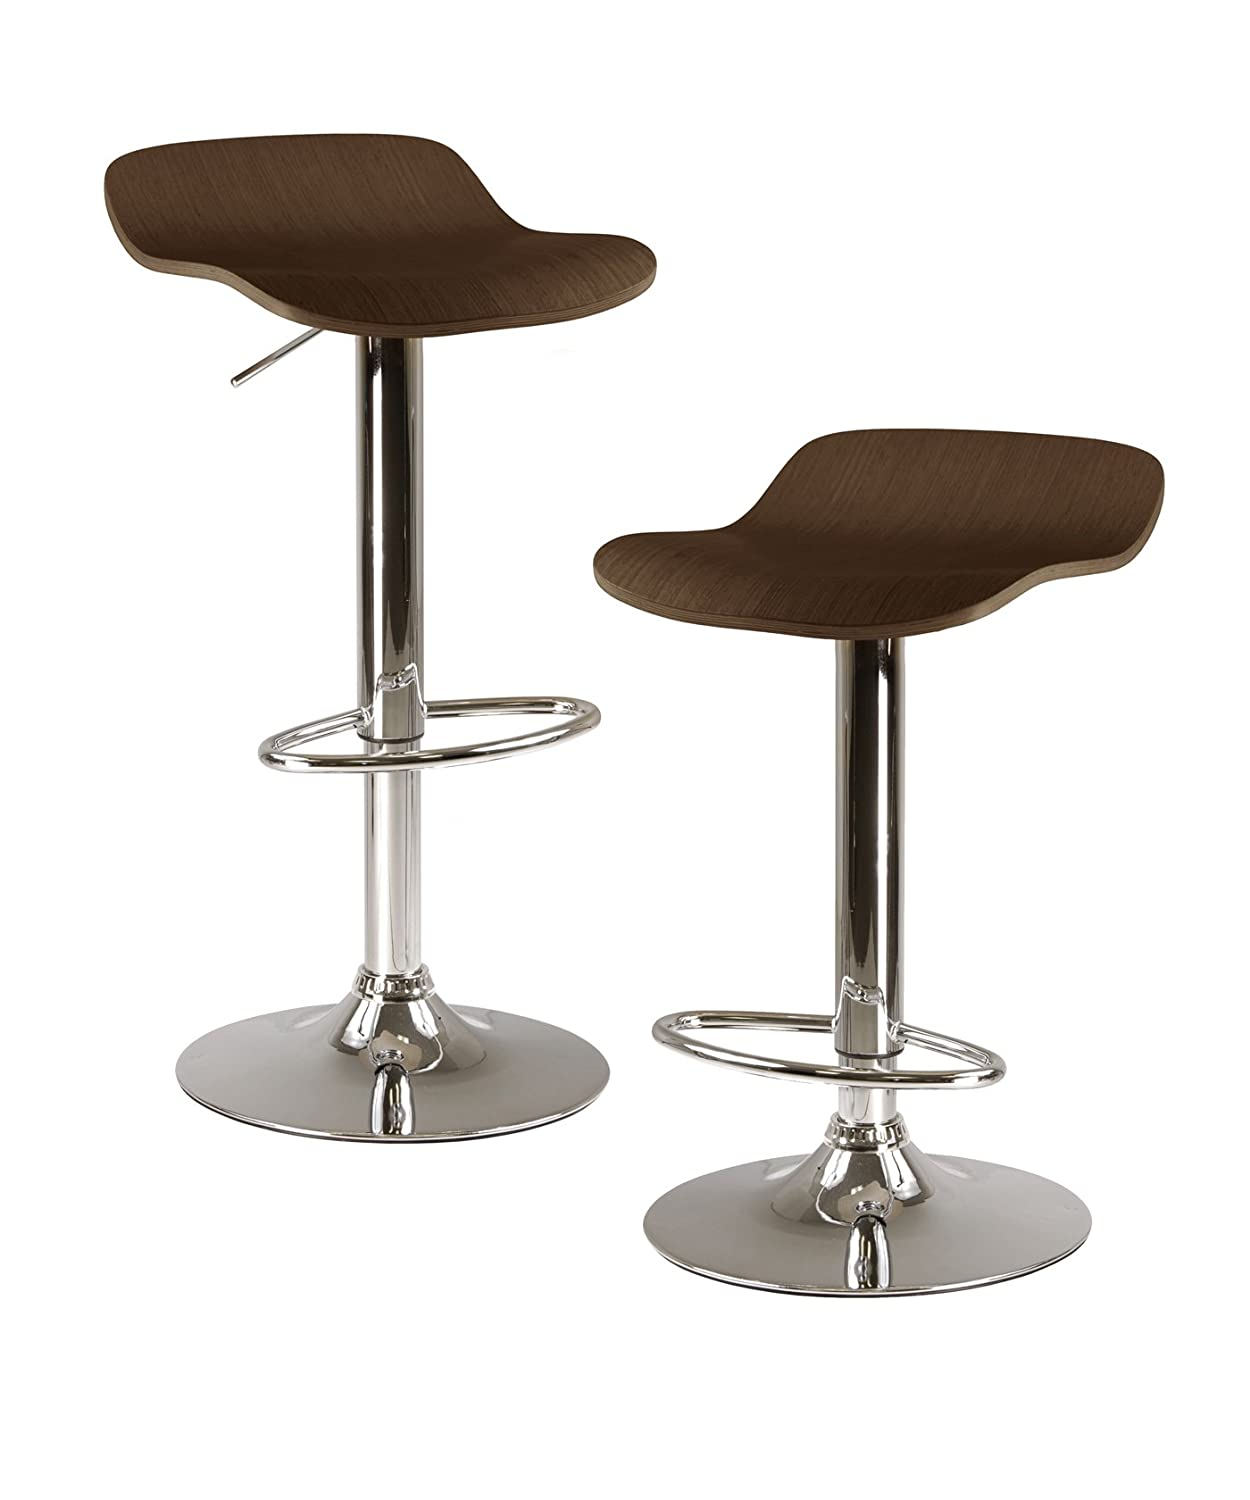 amazoncom winsome kallie air lift adjustable stools in wood  - amazoncom winsome kallie air lift adjustable stools in wood veneer withcappuccino color and metal base set of  kitchen  dining